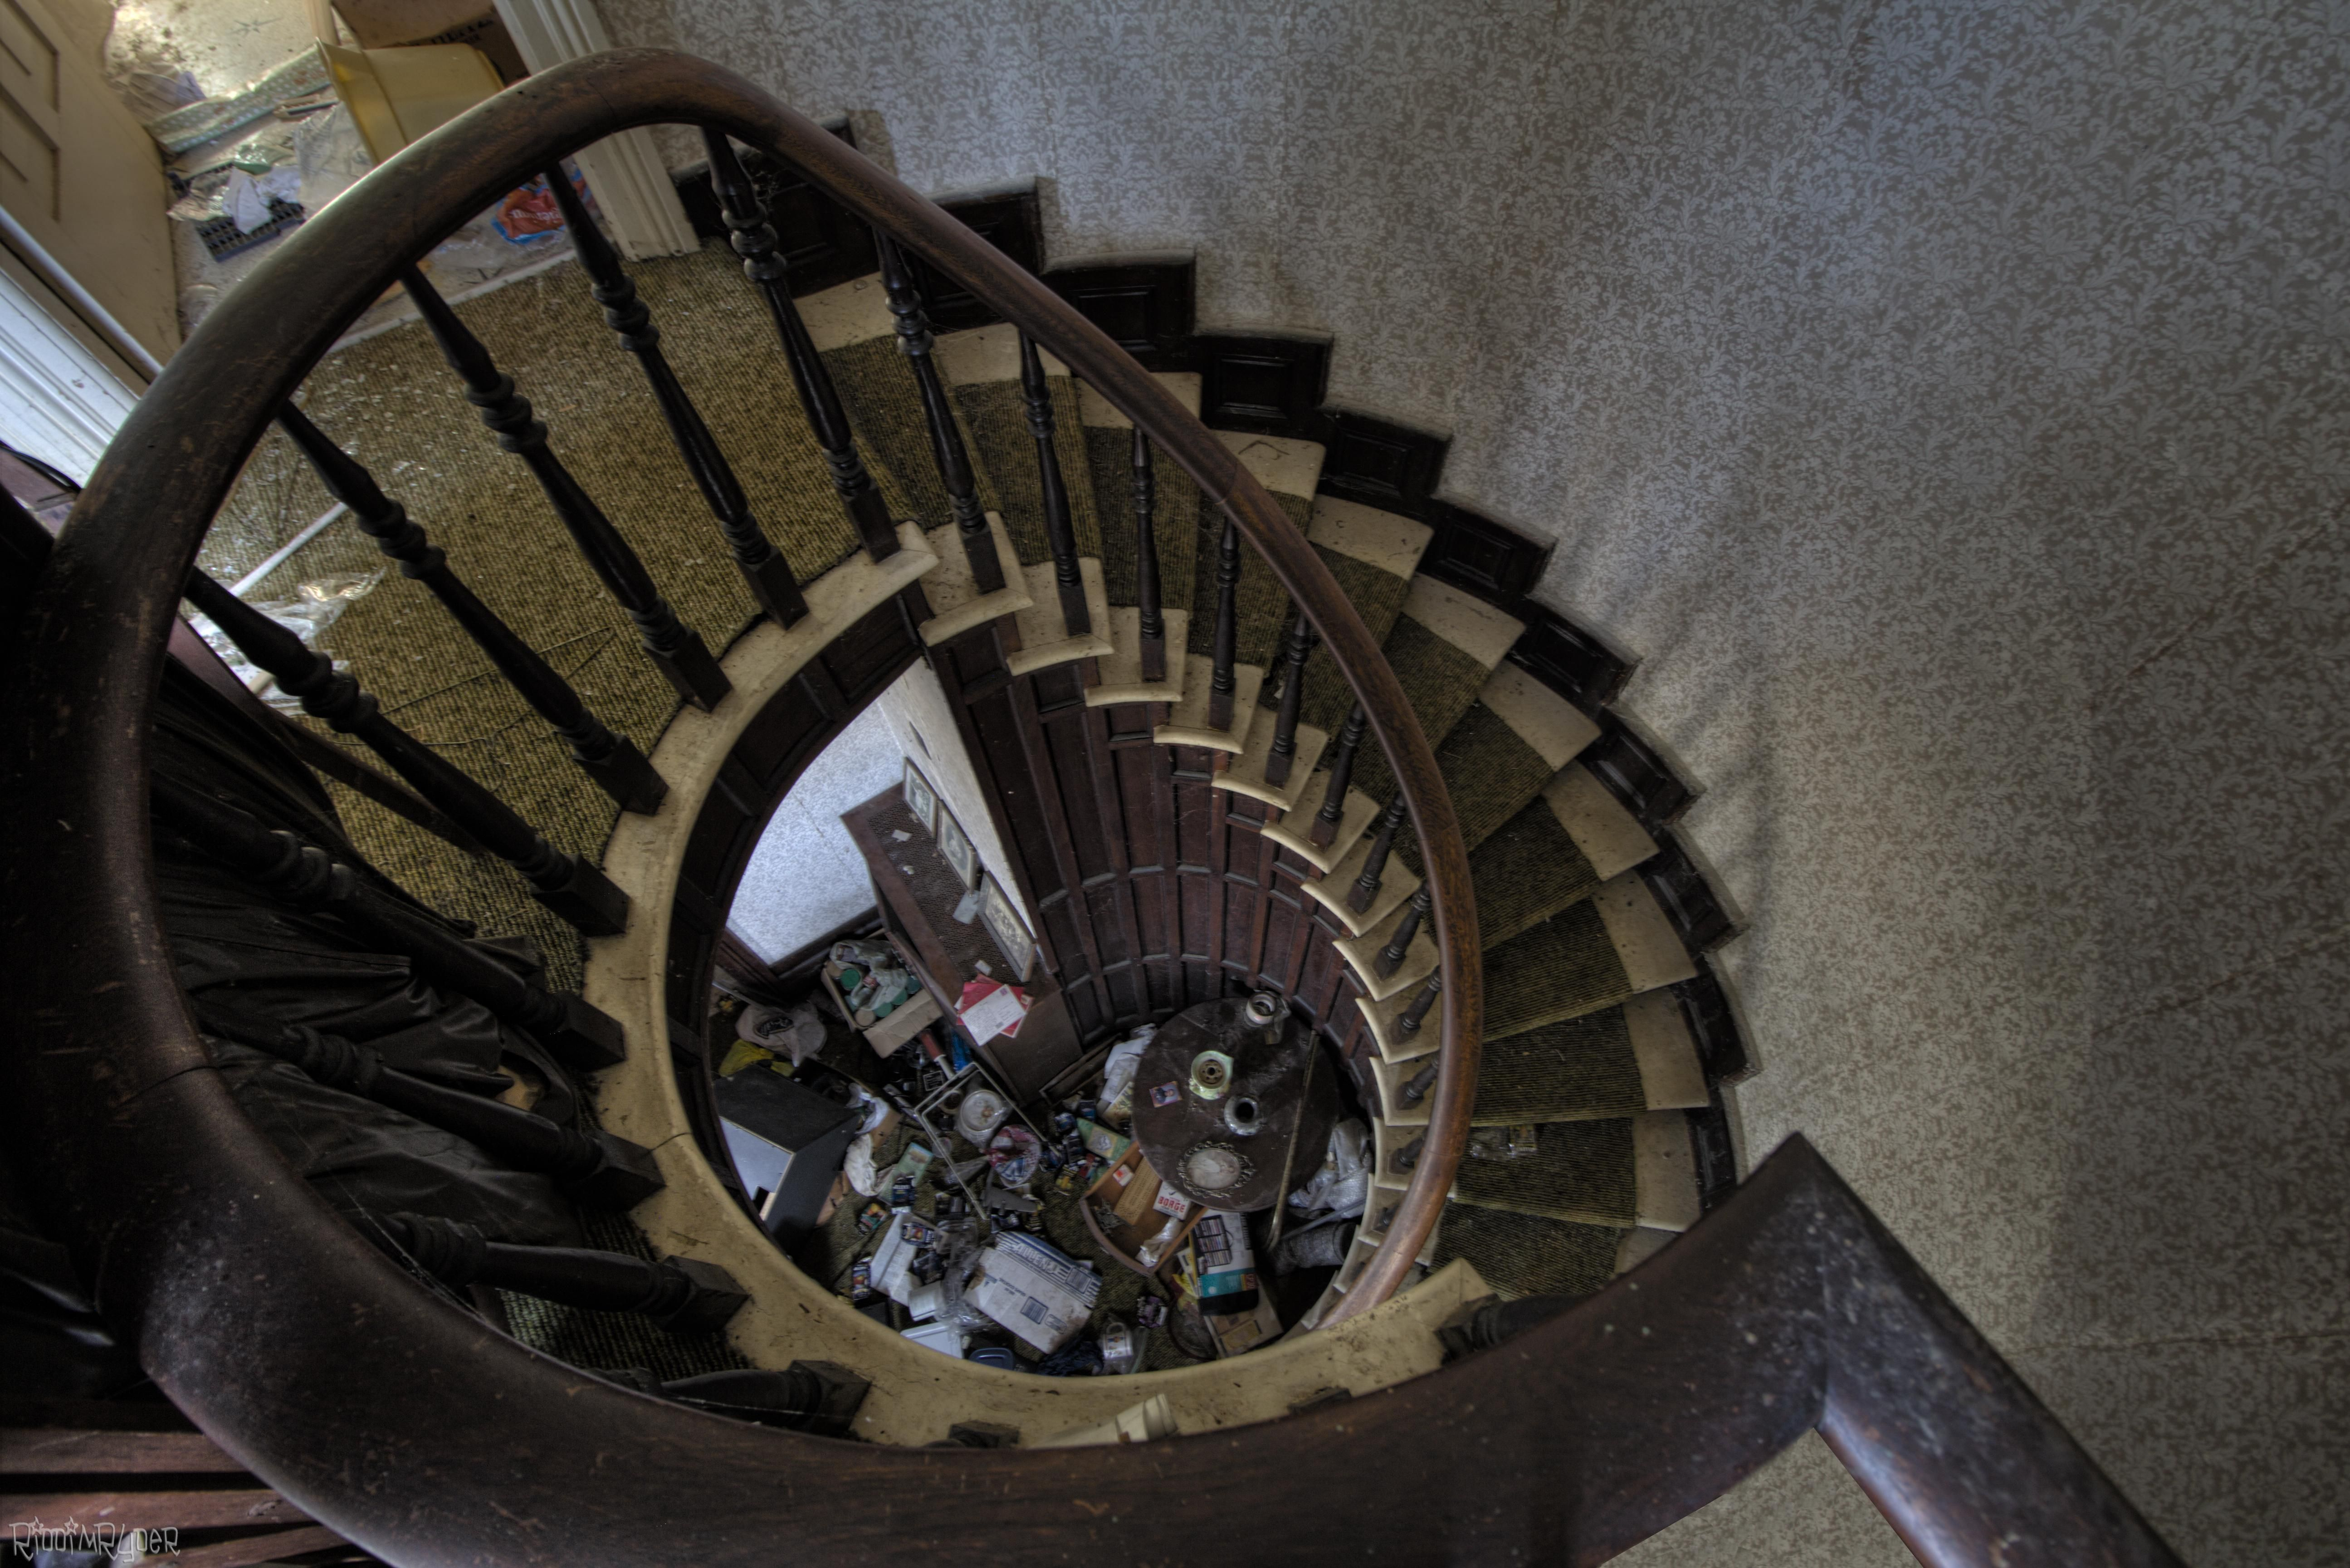 Incredible Staircase Inside An Abandoned Time Capsule House [5181 X